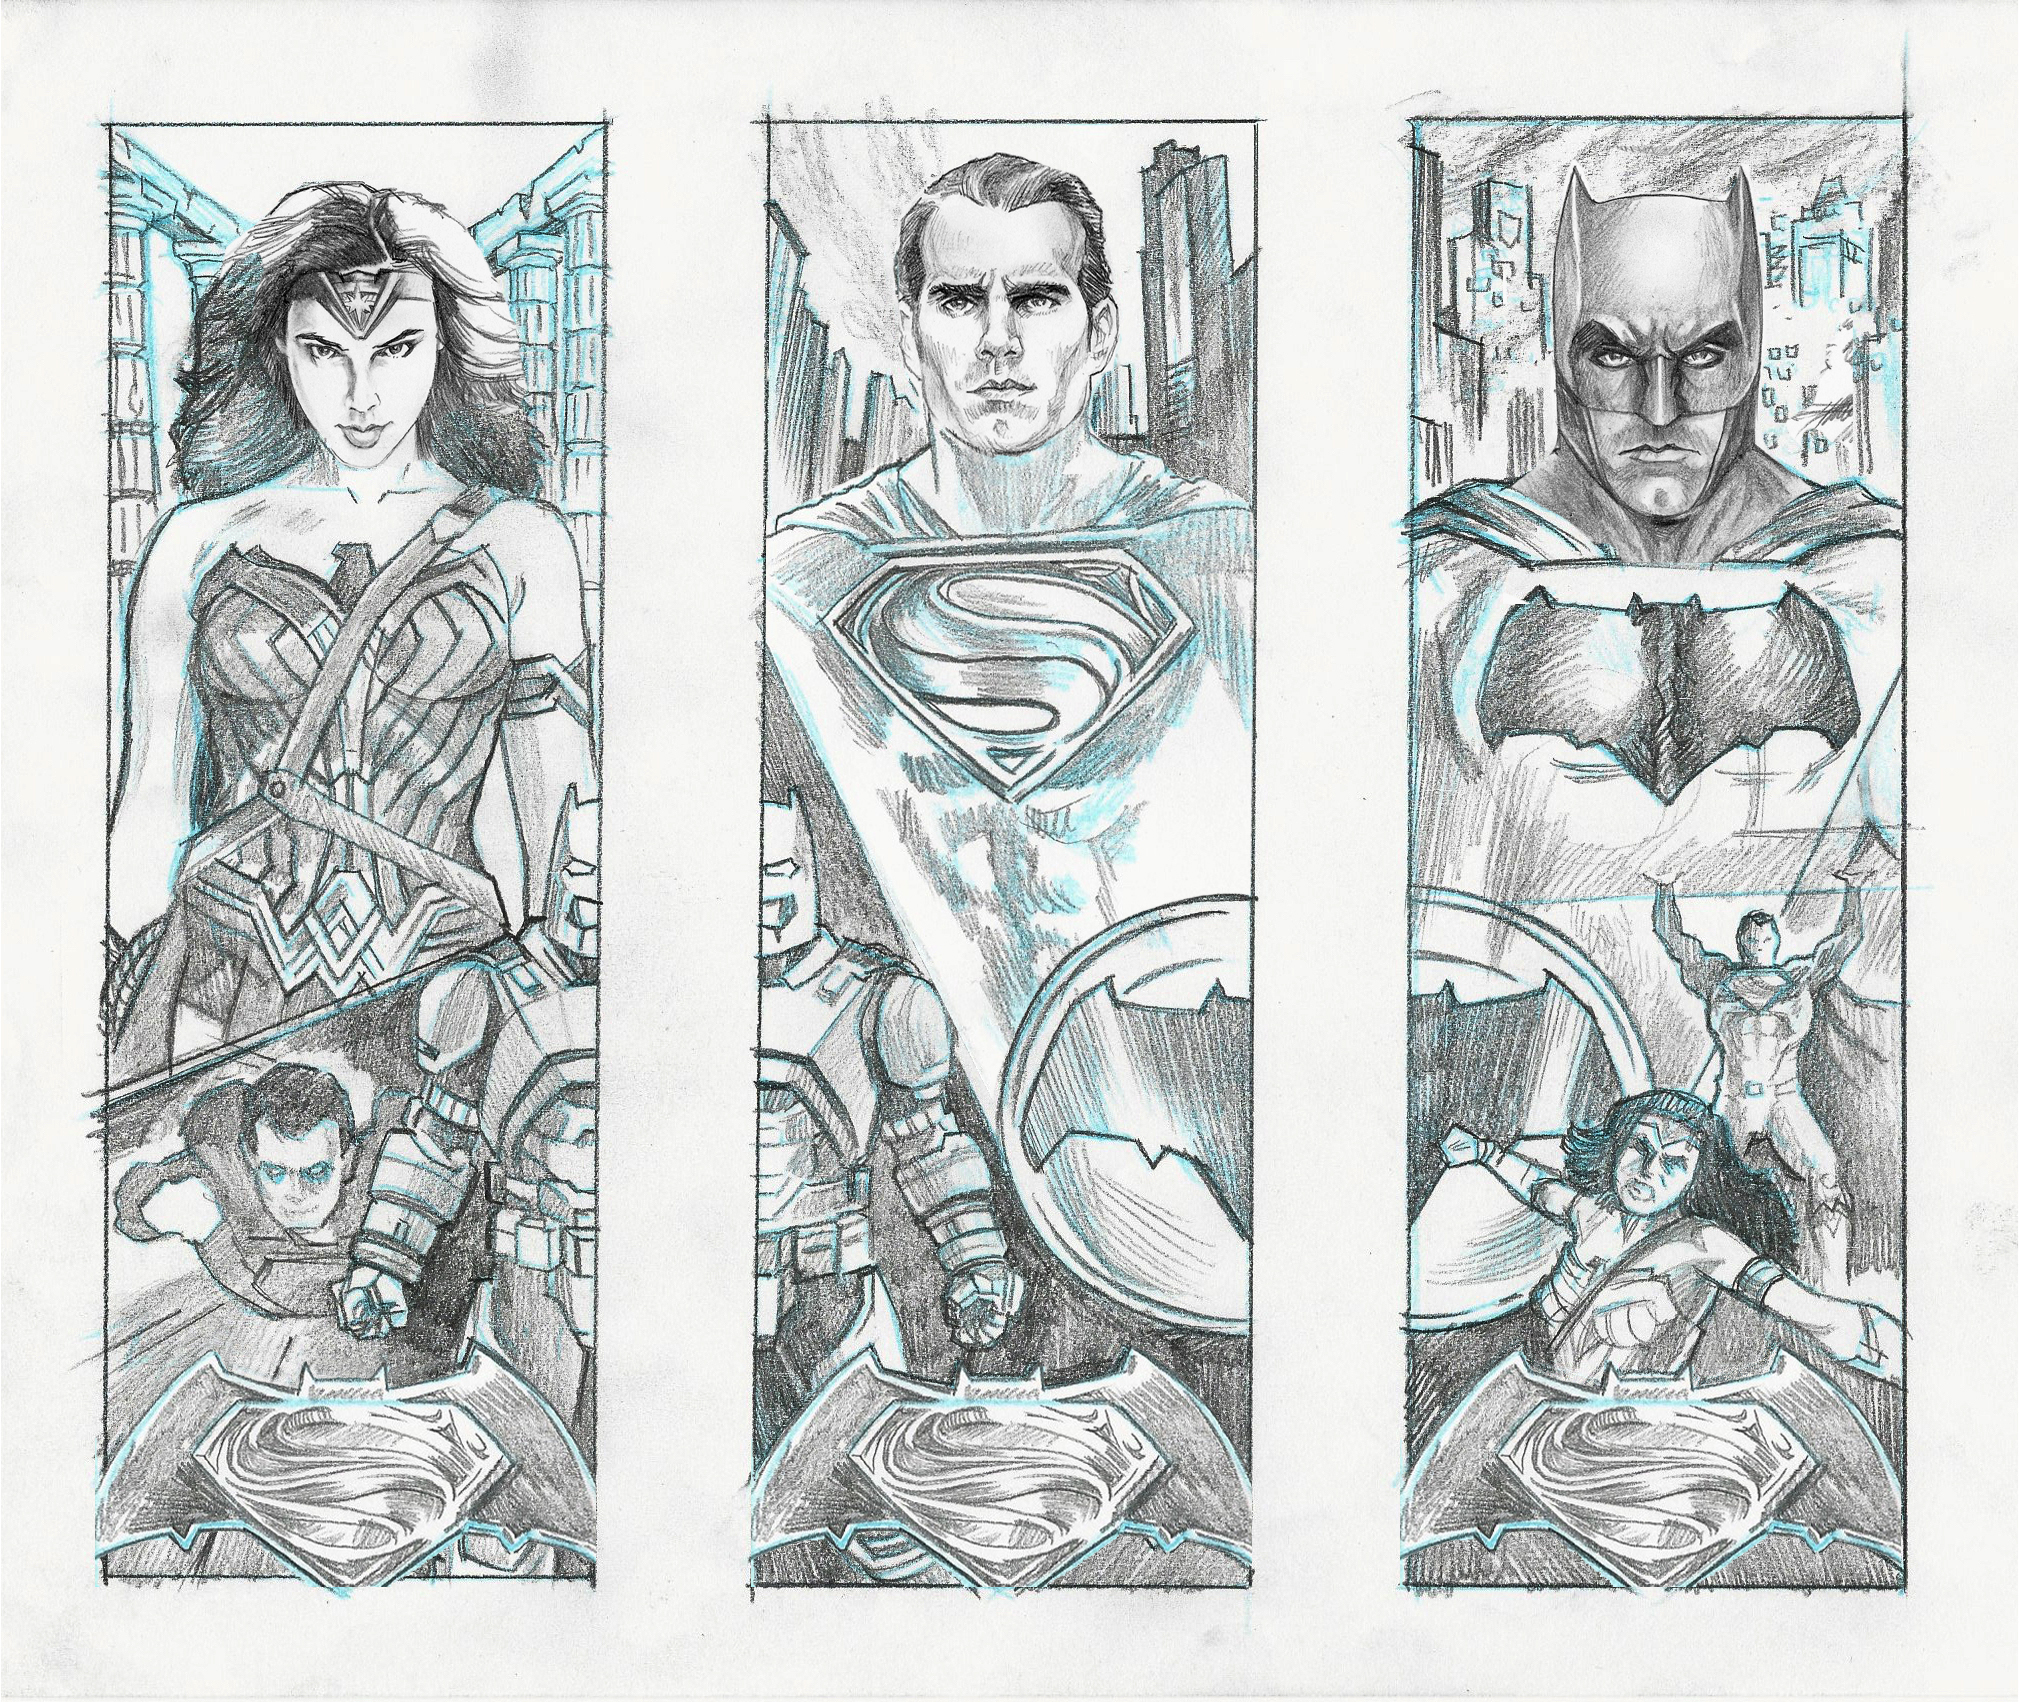 """Concept sketches for a proposed set of 3 connecting, screenprinted posters set to debut with the premiere of """"Batman V Superman"""". All characters © & TM DC Comics"""